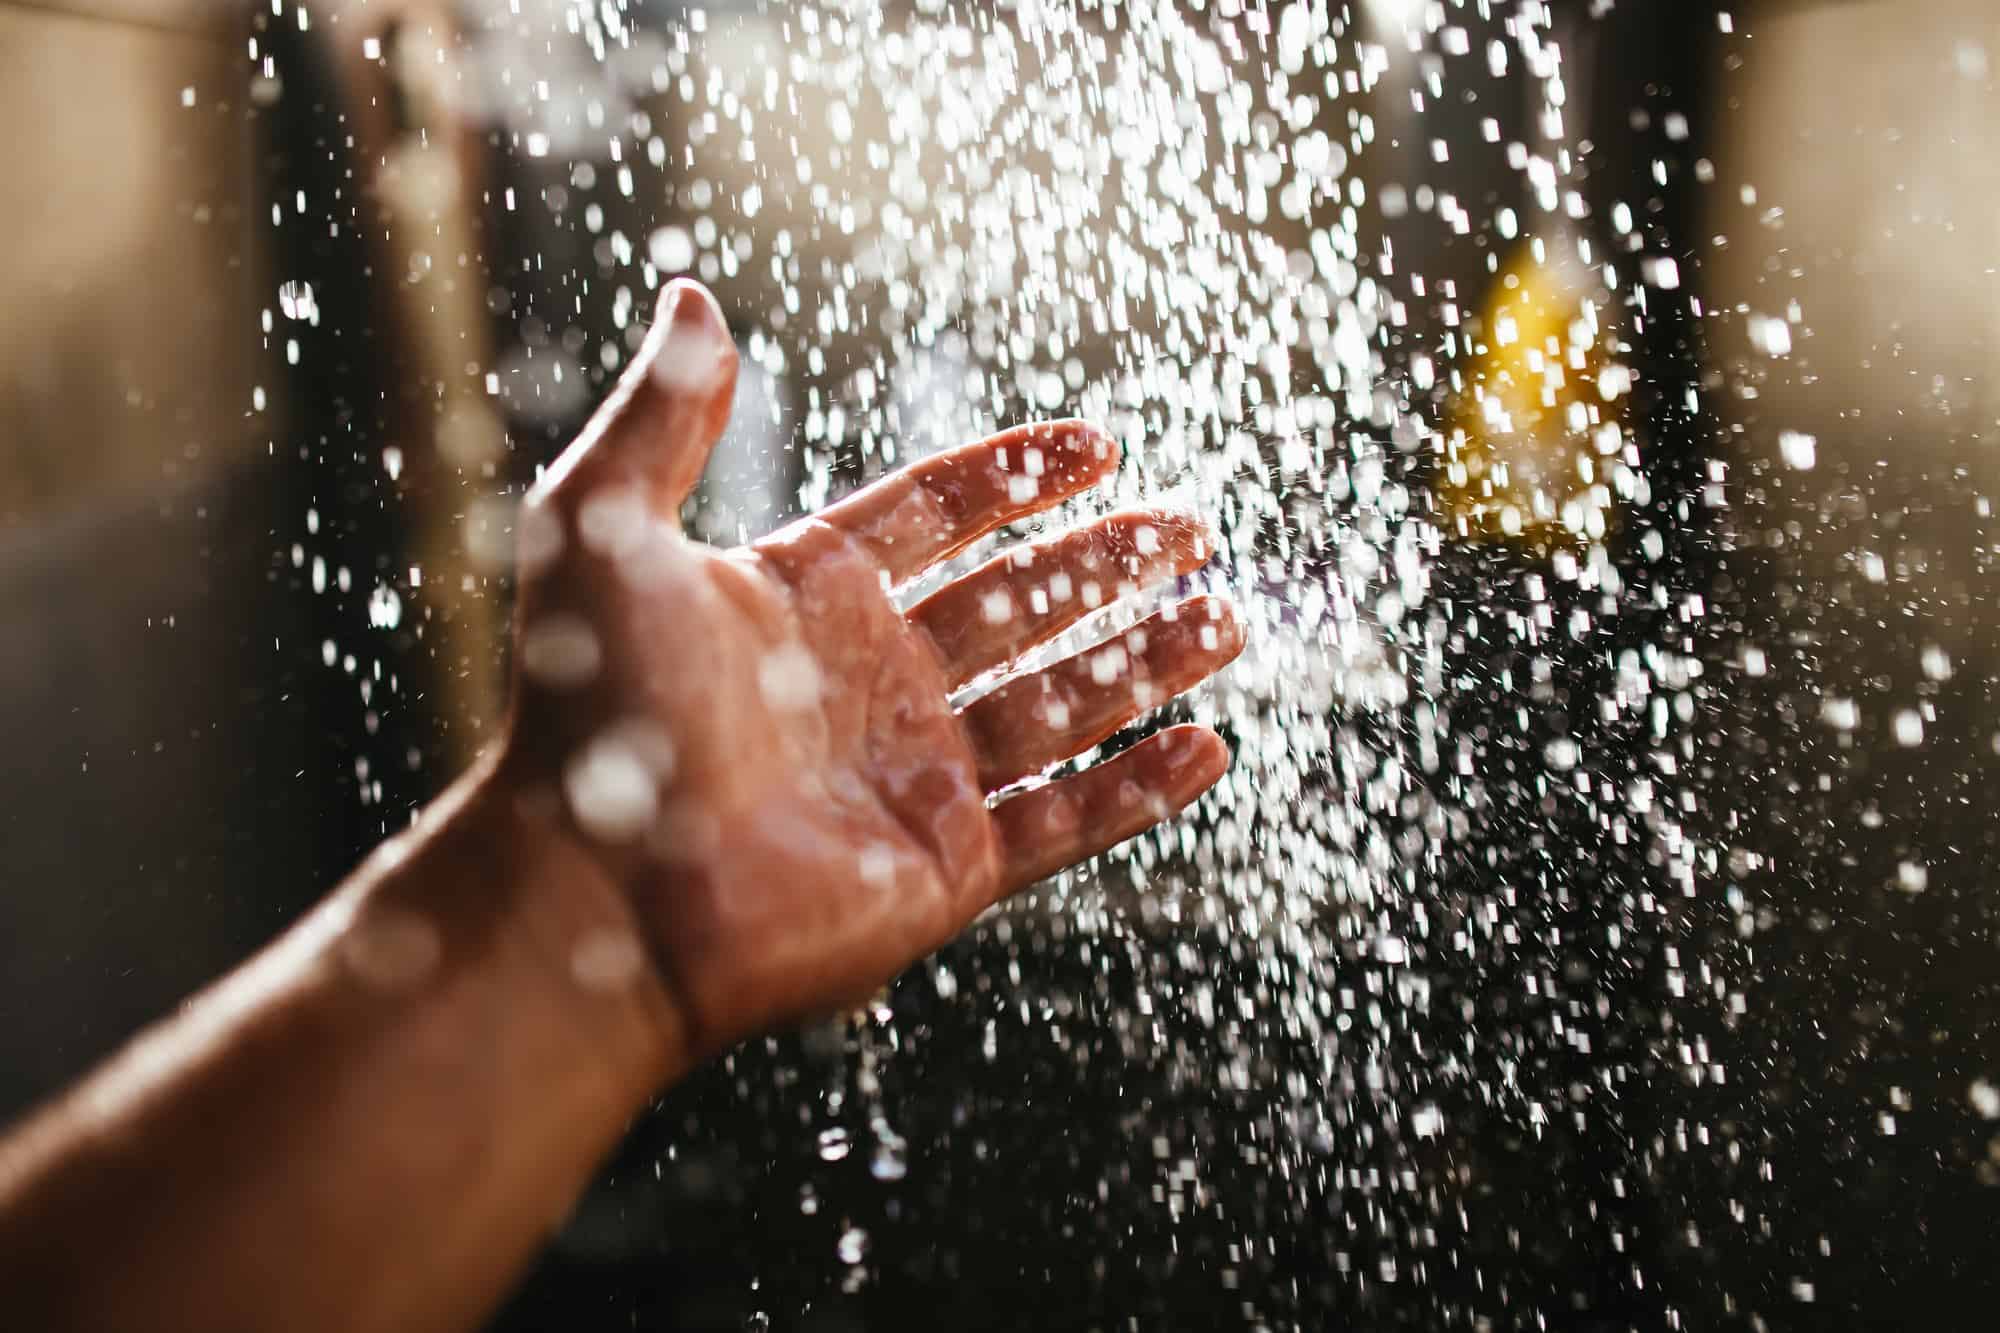 A man's hand in a spray of water in the sunlight against a dark background. Water as a symbol of purity and life